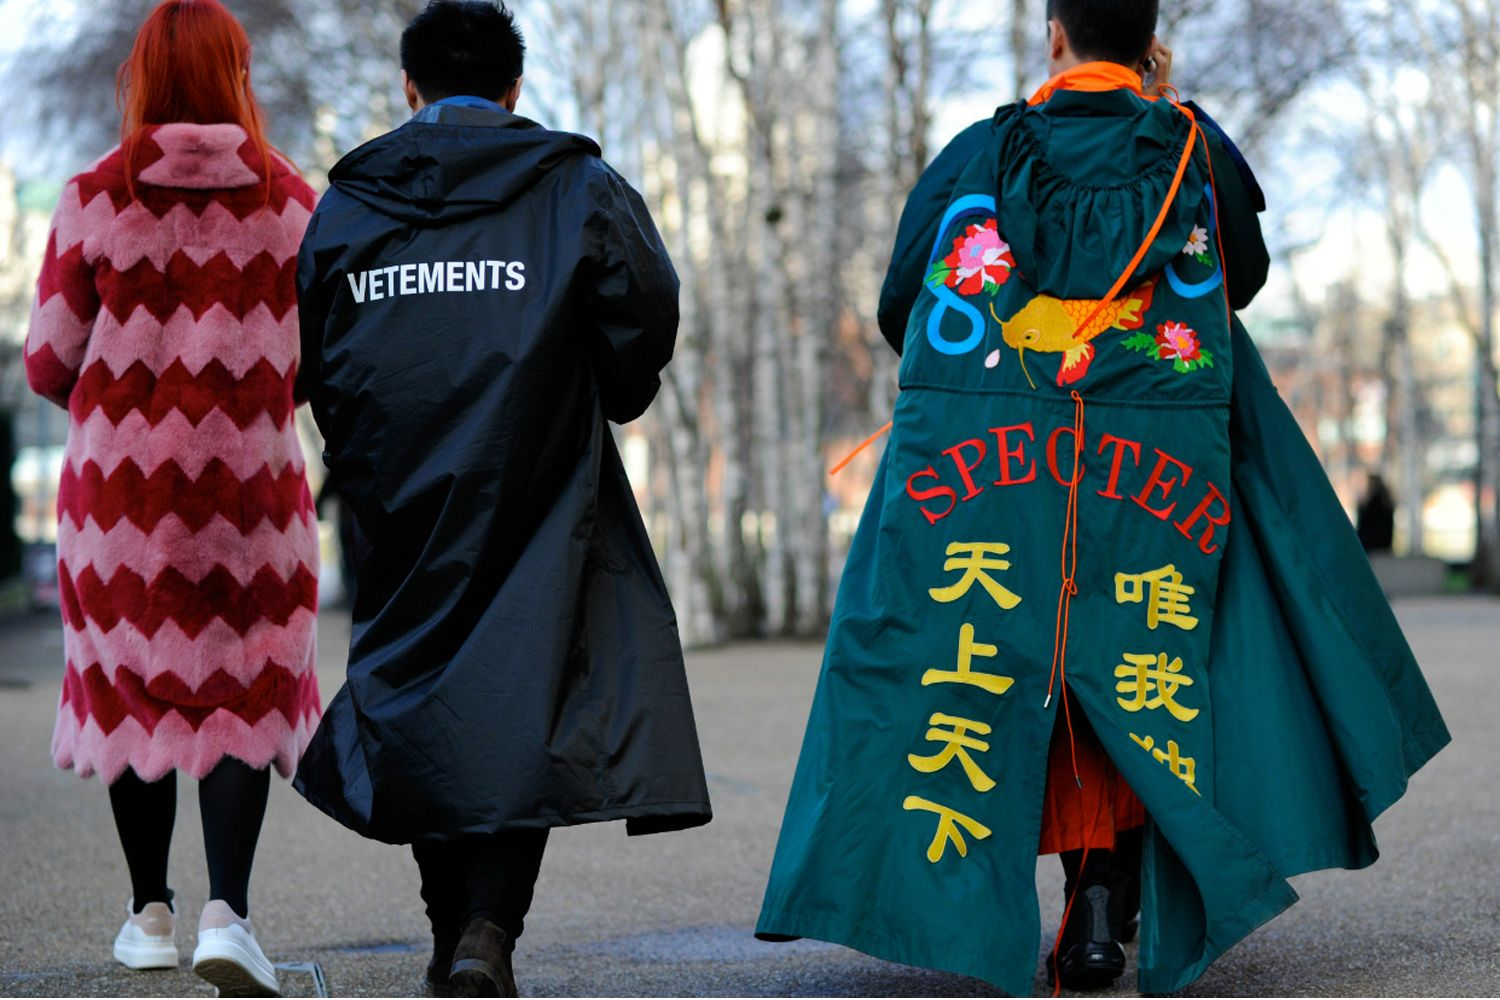 Vetements Does Couture: Can We Expect DHL T-shirts At The Most Glam Of Fashion Weeks? http://ift.tt/25Aqvhp #InStyleUK #Fashion